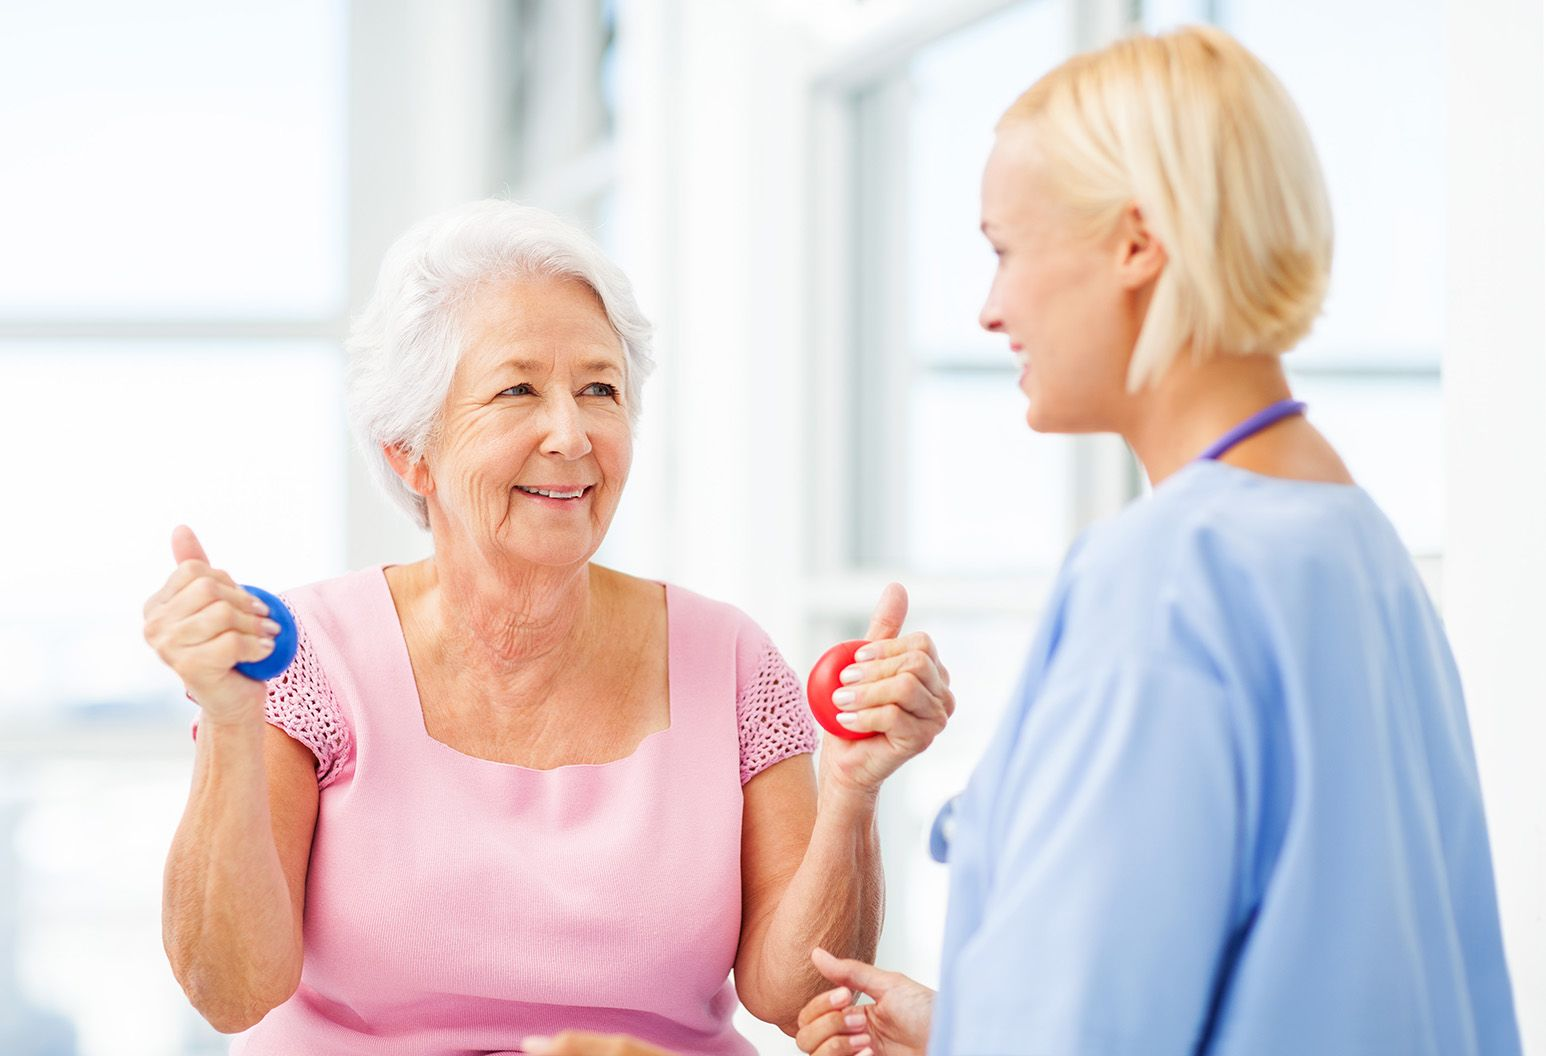 Female young nurse assisting senior patient in squeezing hand therapy balls at nursing home